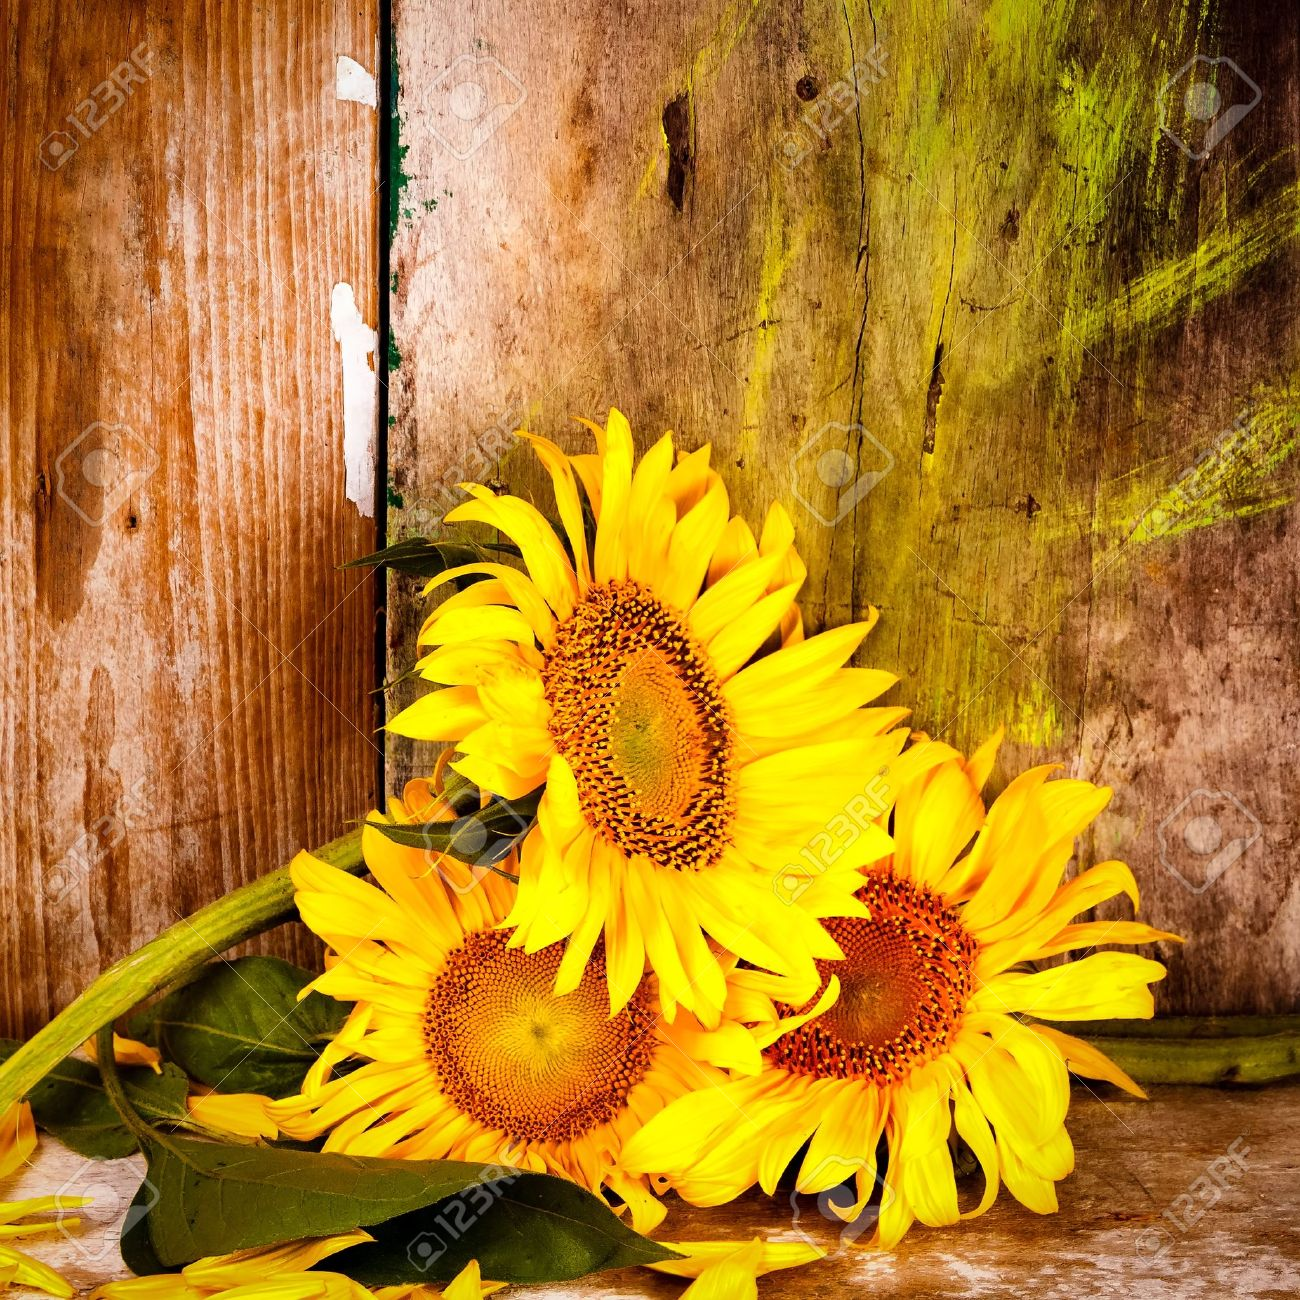 Jpg X Rustic Sunflower Background